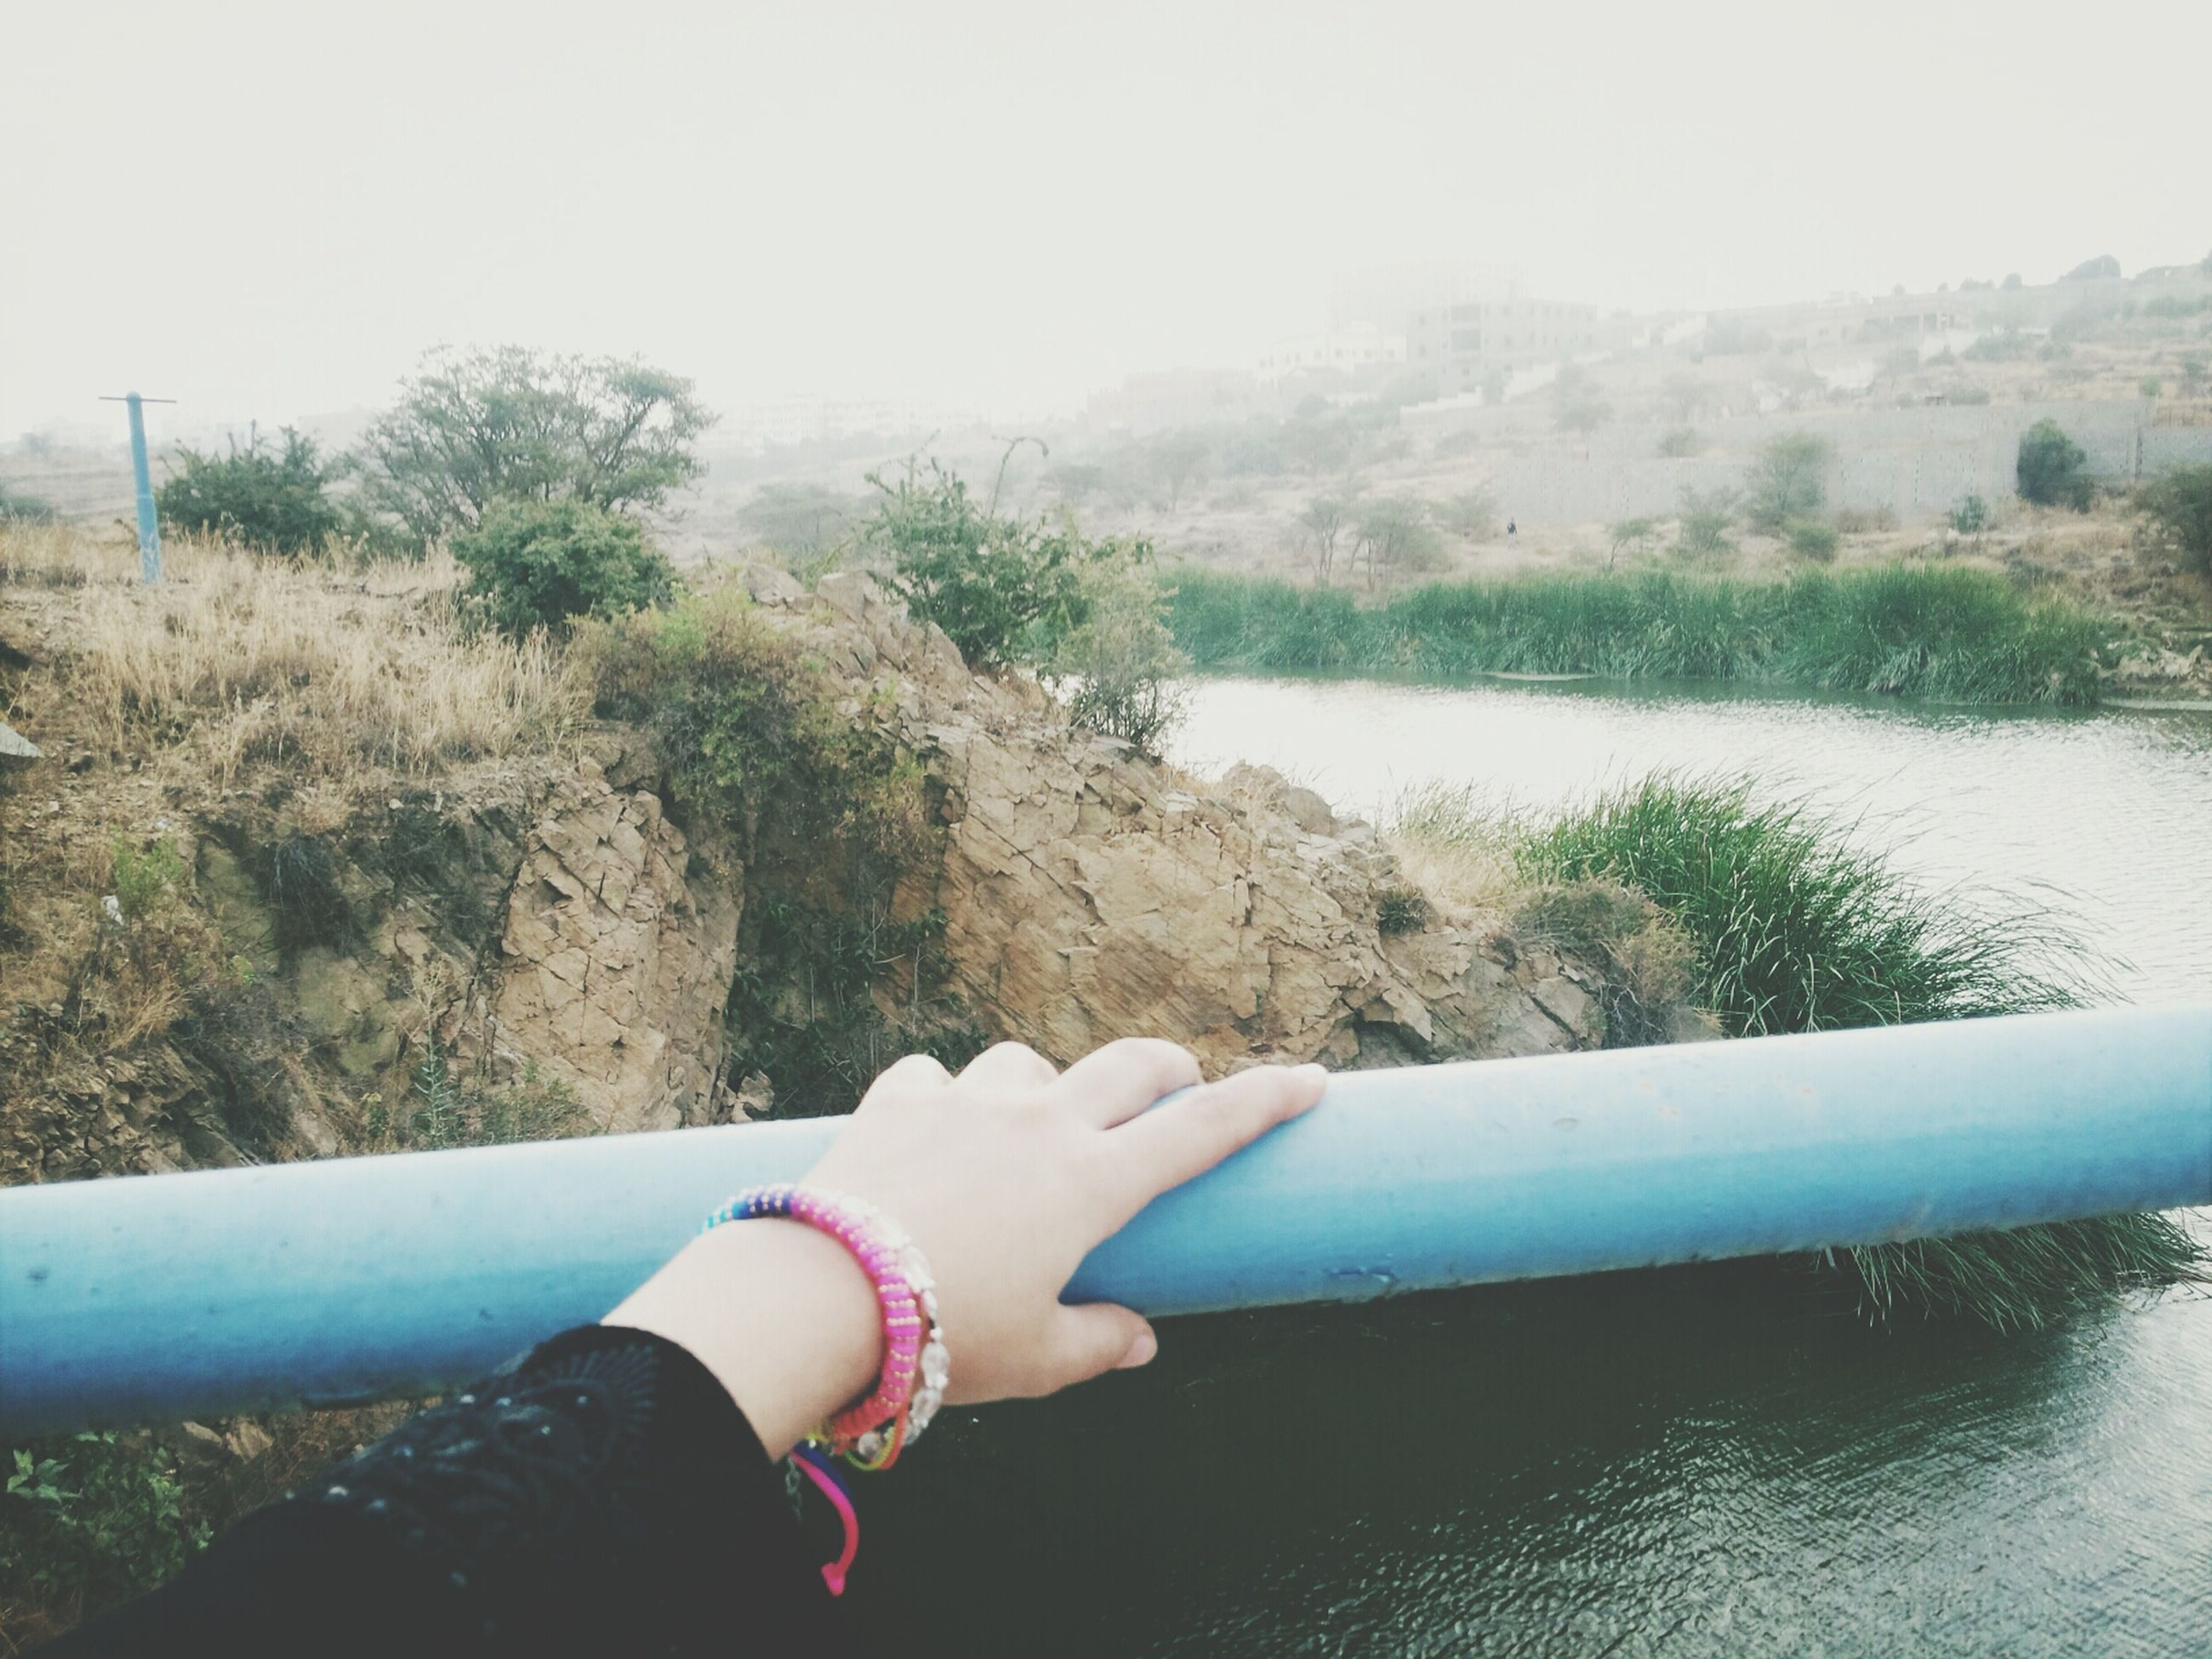 water, lifestyles, leisure activity, low section, person, tree, personal perspective, part of, nature, lake, barefoot, day, holding, river, sea